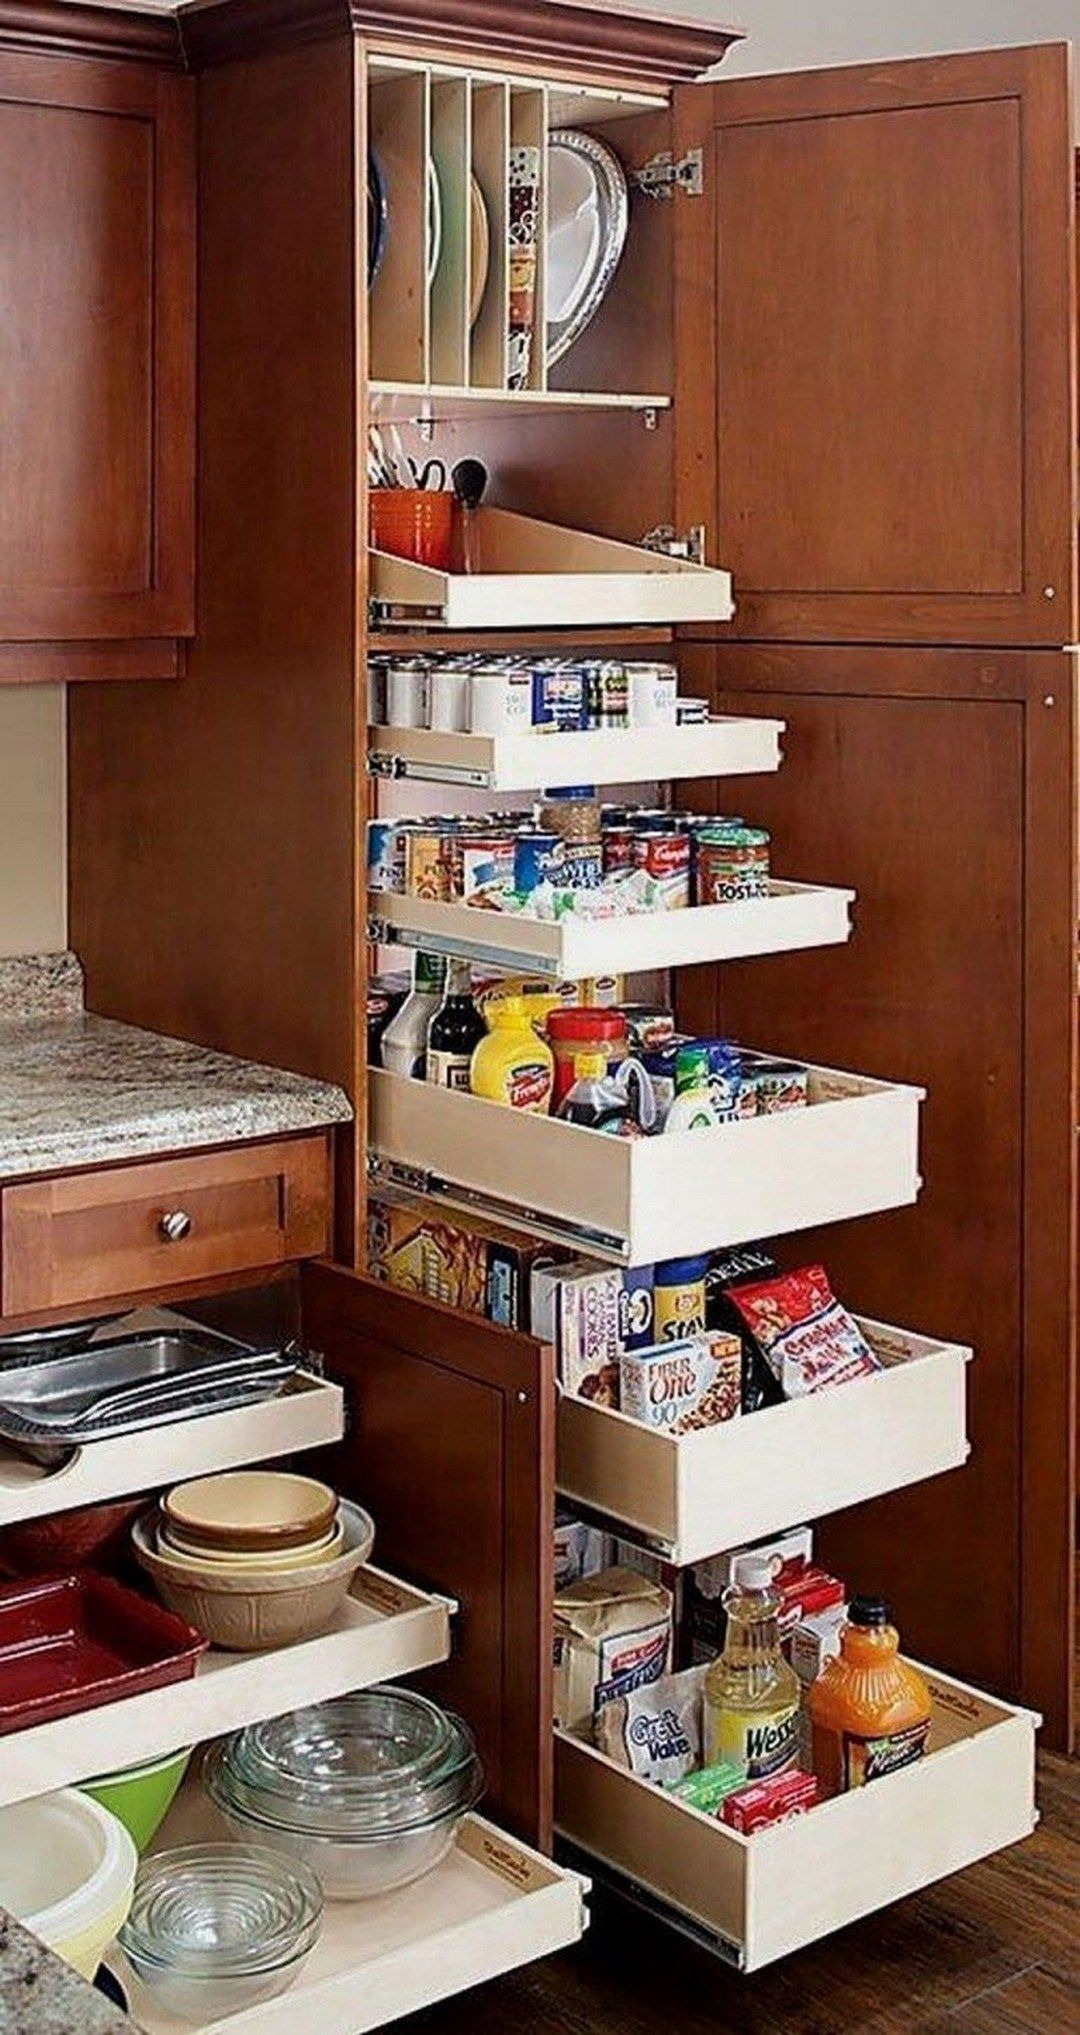 31 Useful Kitchen Cabinets For Storage (1) images